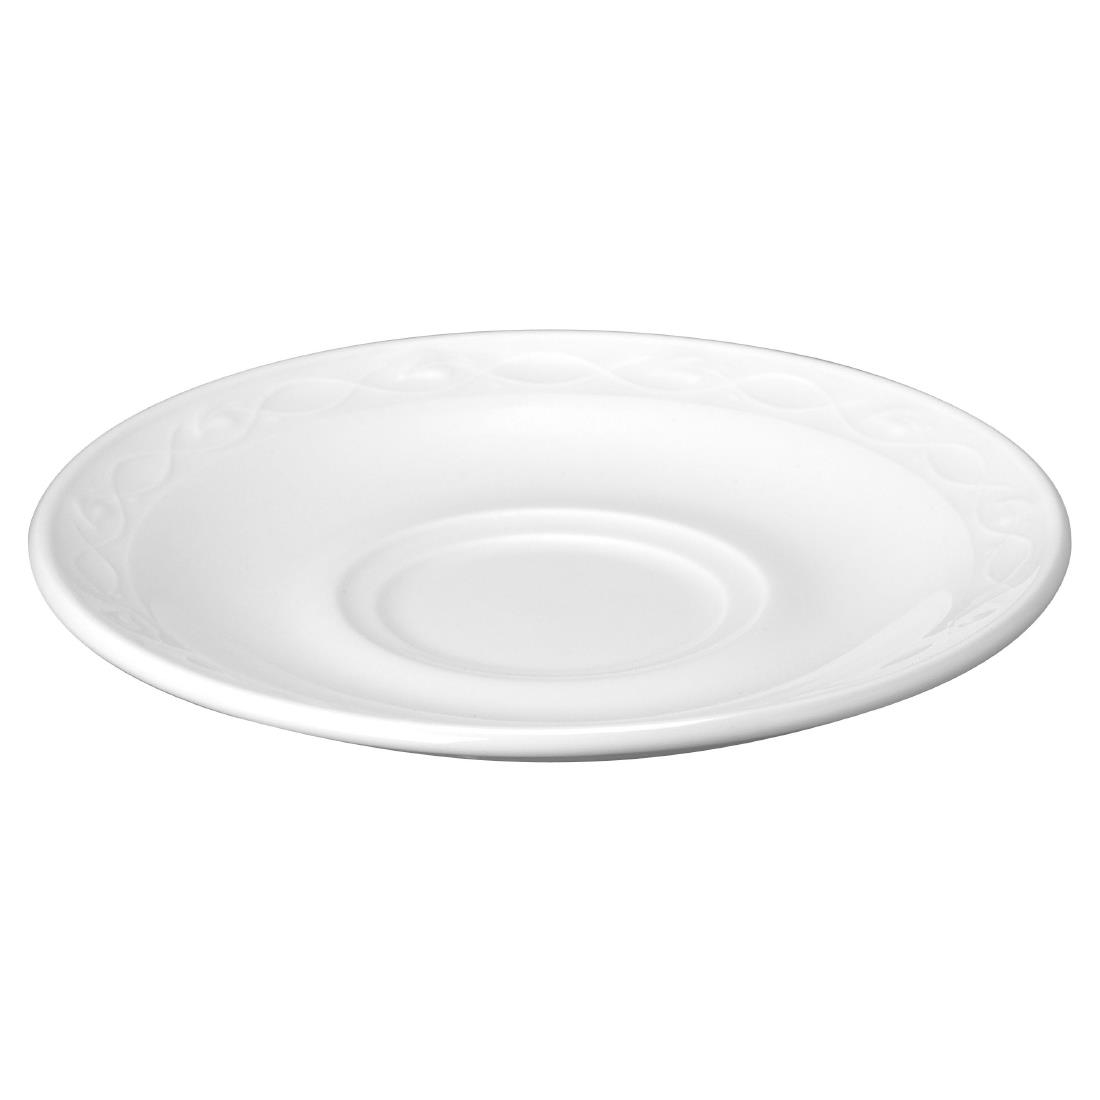 Churchill Chateau Blanc Saucers 150mm (Pack of 24) (M544)